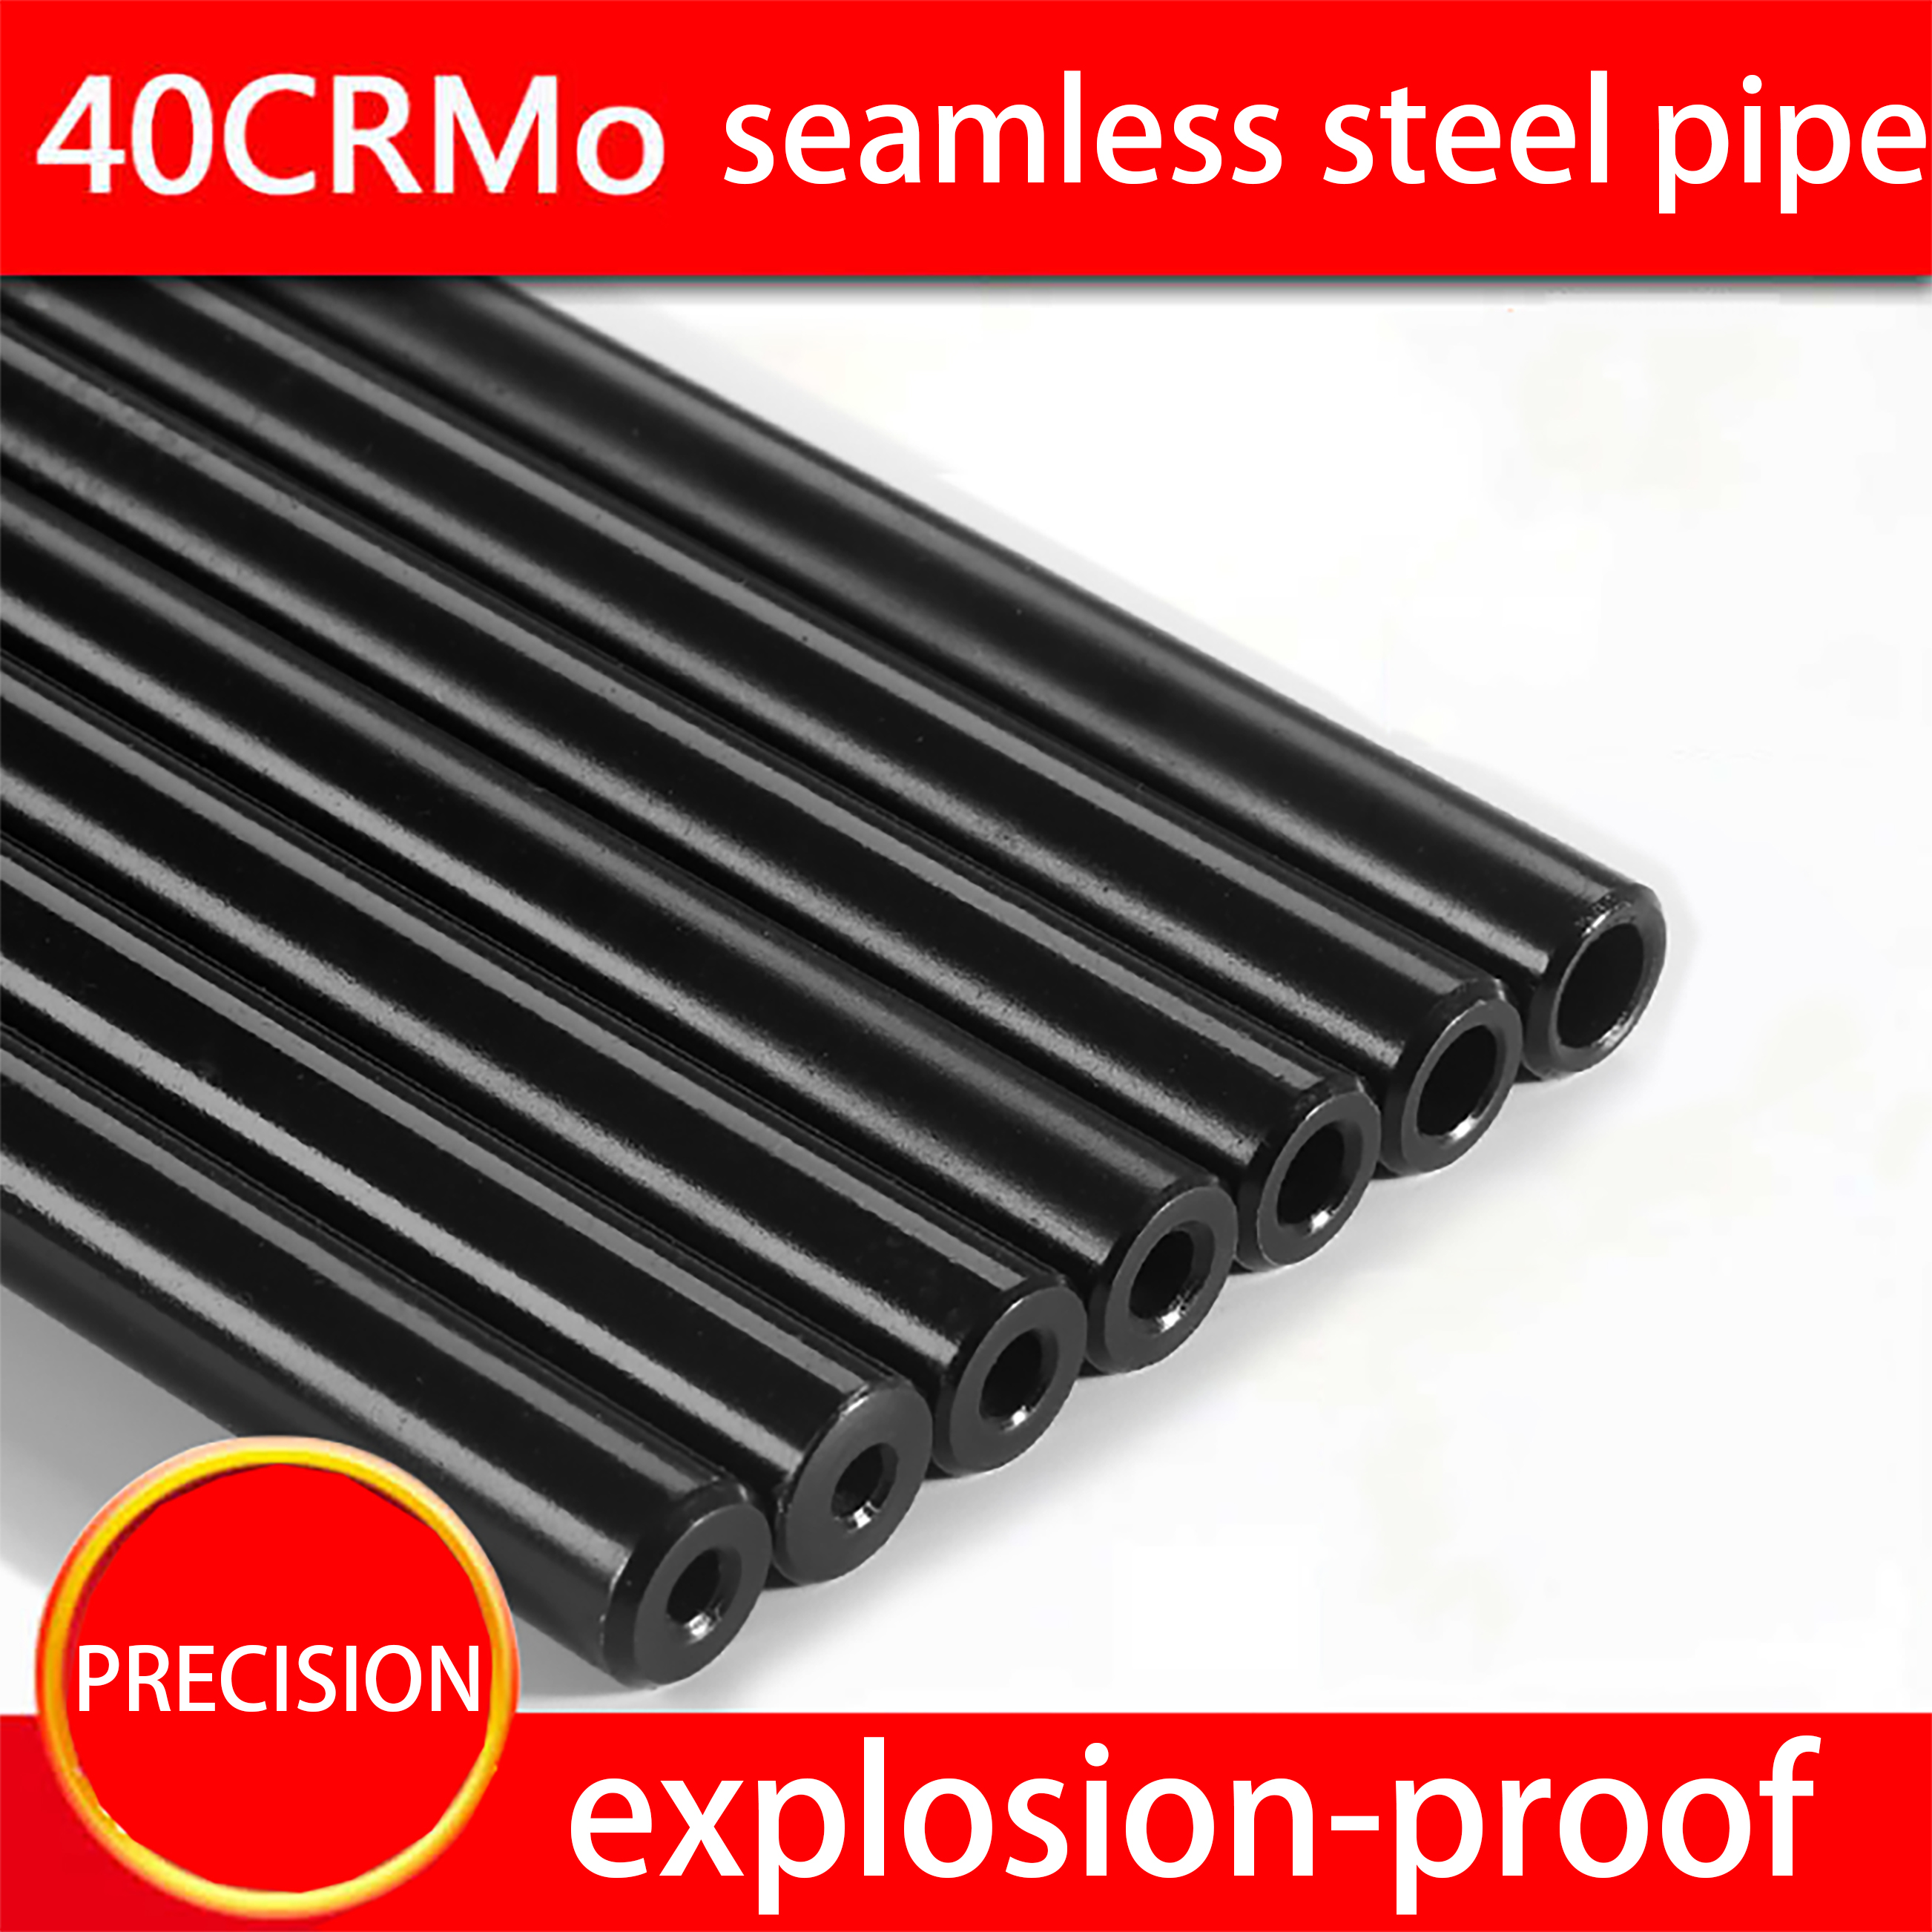 17mm O/D Hydraulic Tube Round Steel Pipe Seamless Steel Tube Explosion-proof Pipeprint Black